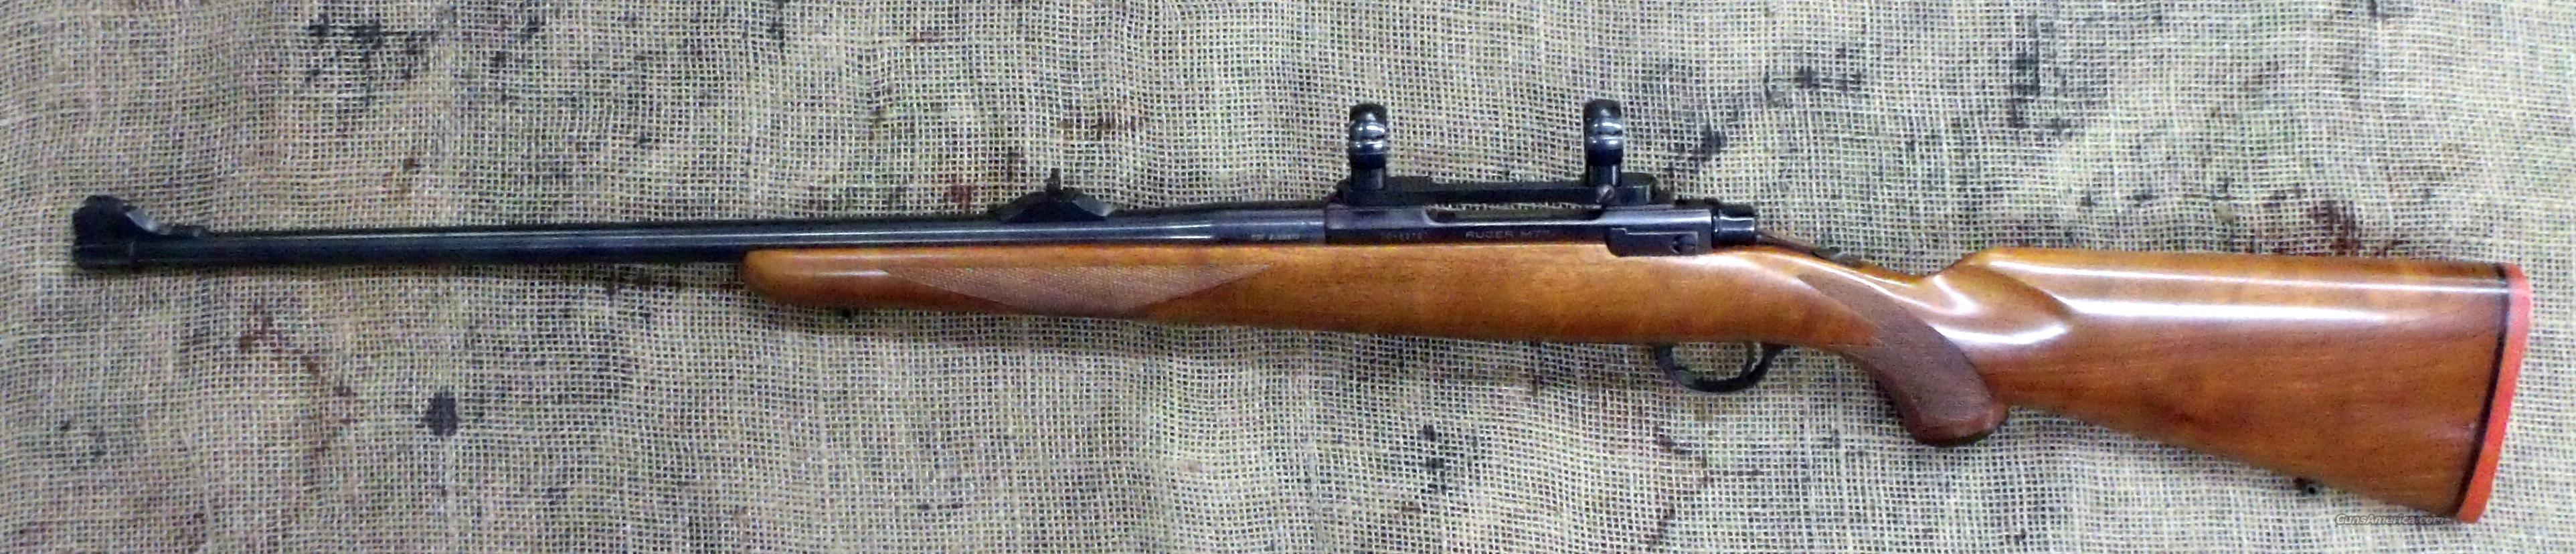 RUGER Early Model 77 Rifle, 257 Roberts Cal  Guns > Rifles > Ruger Rifles > Model 77